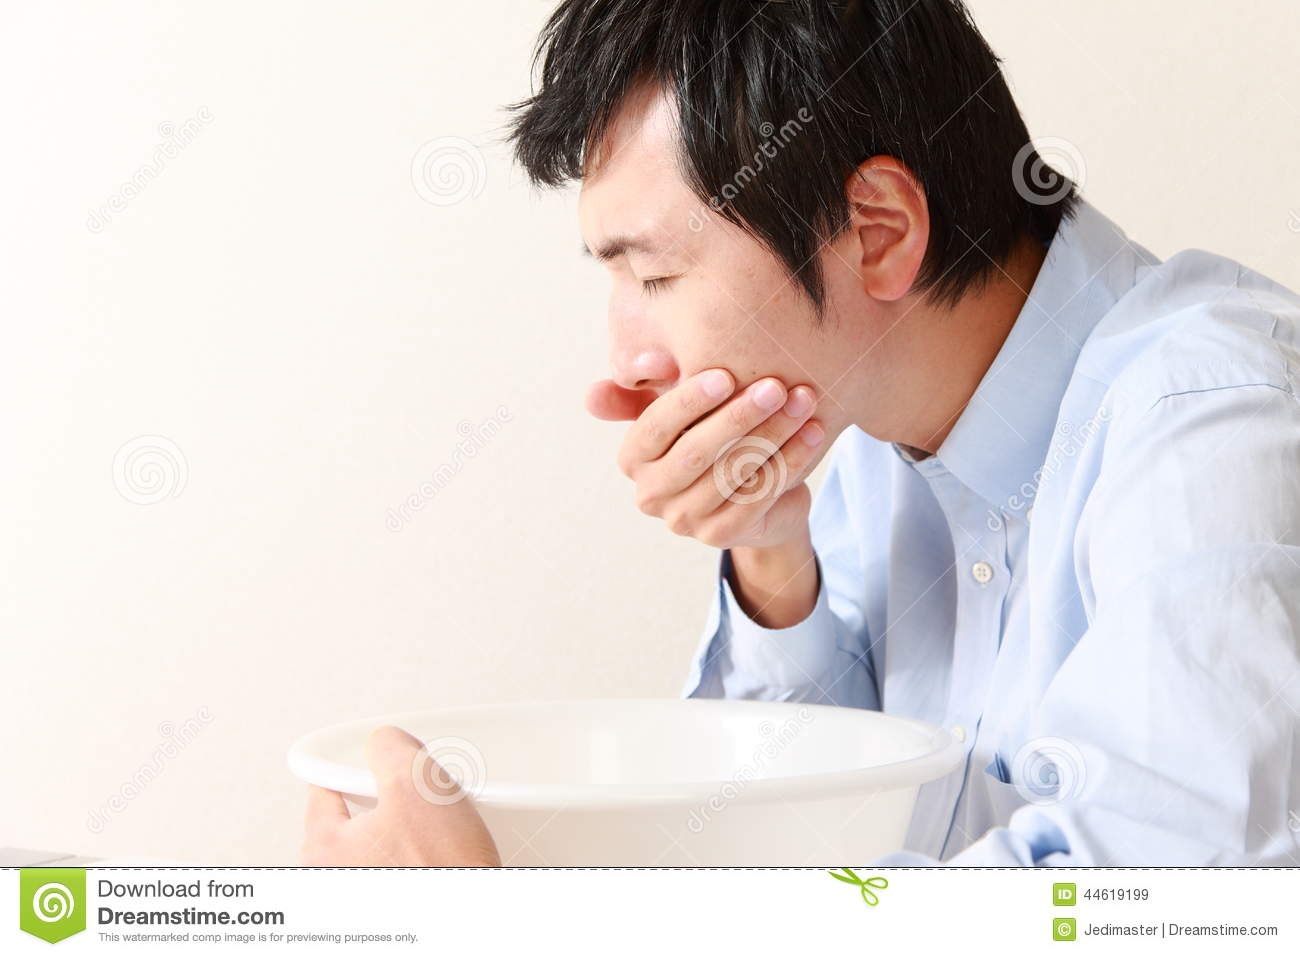 More similar stock images of ` Vomiting man `